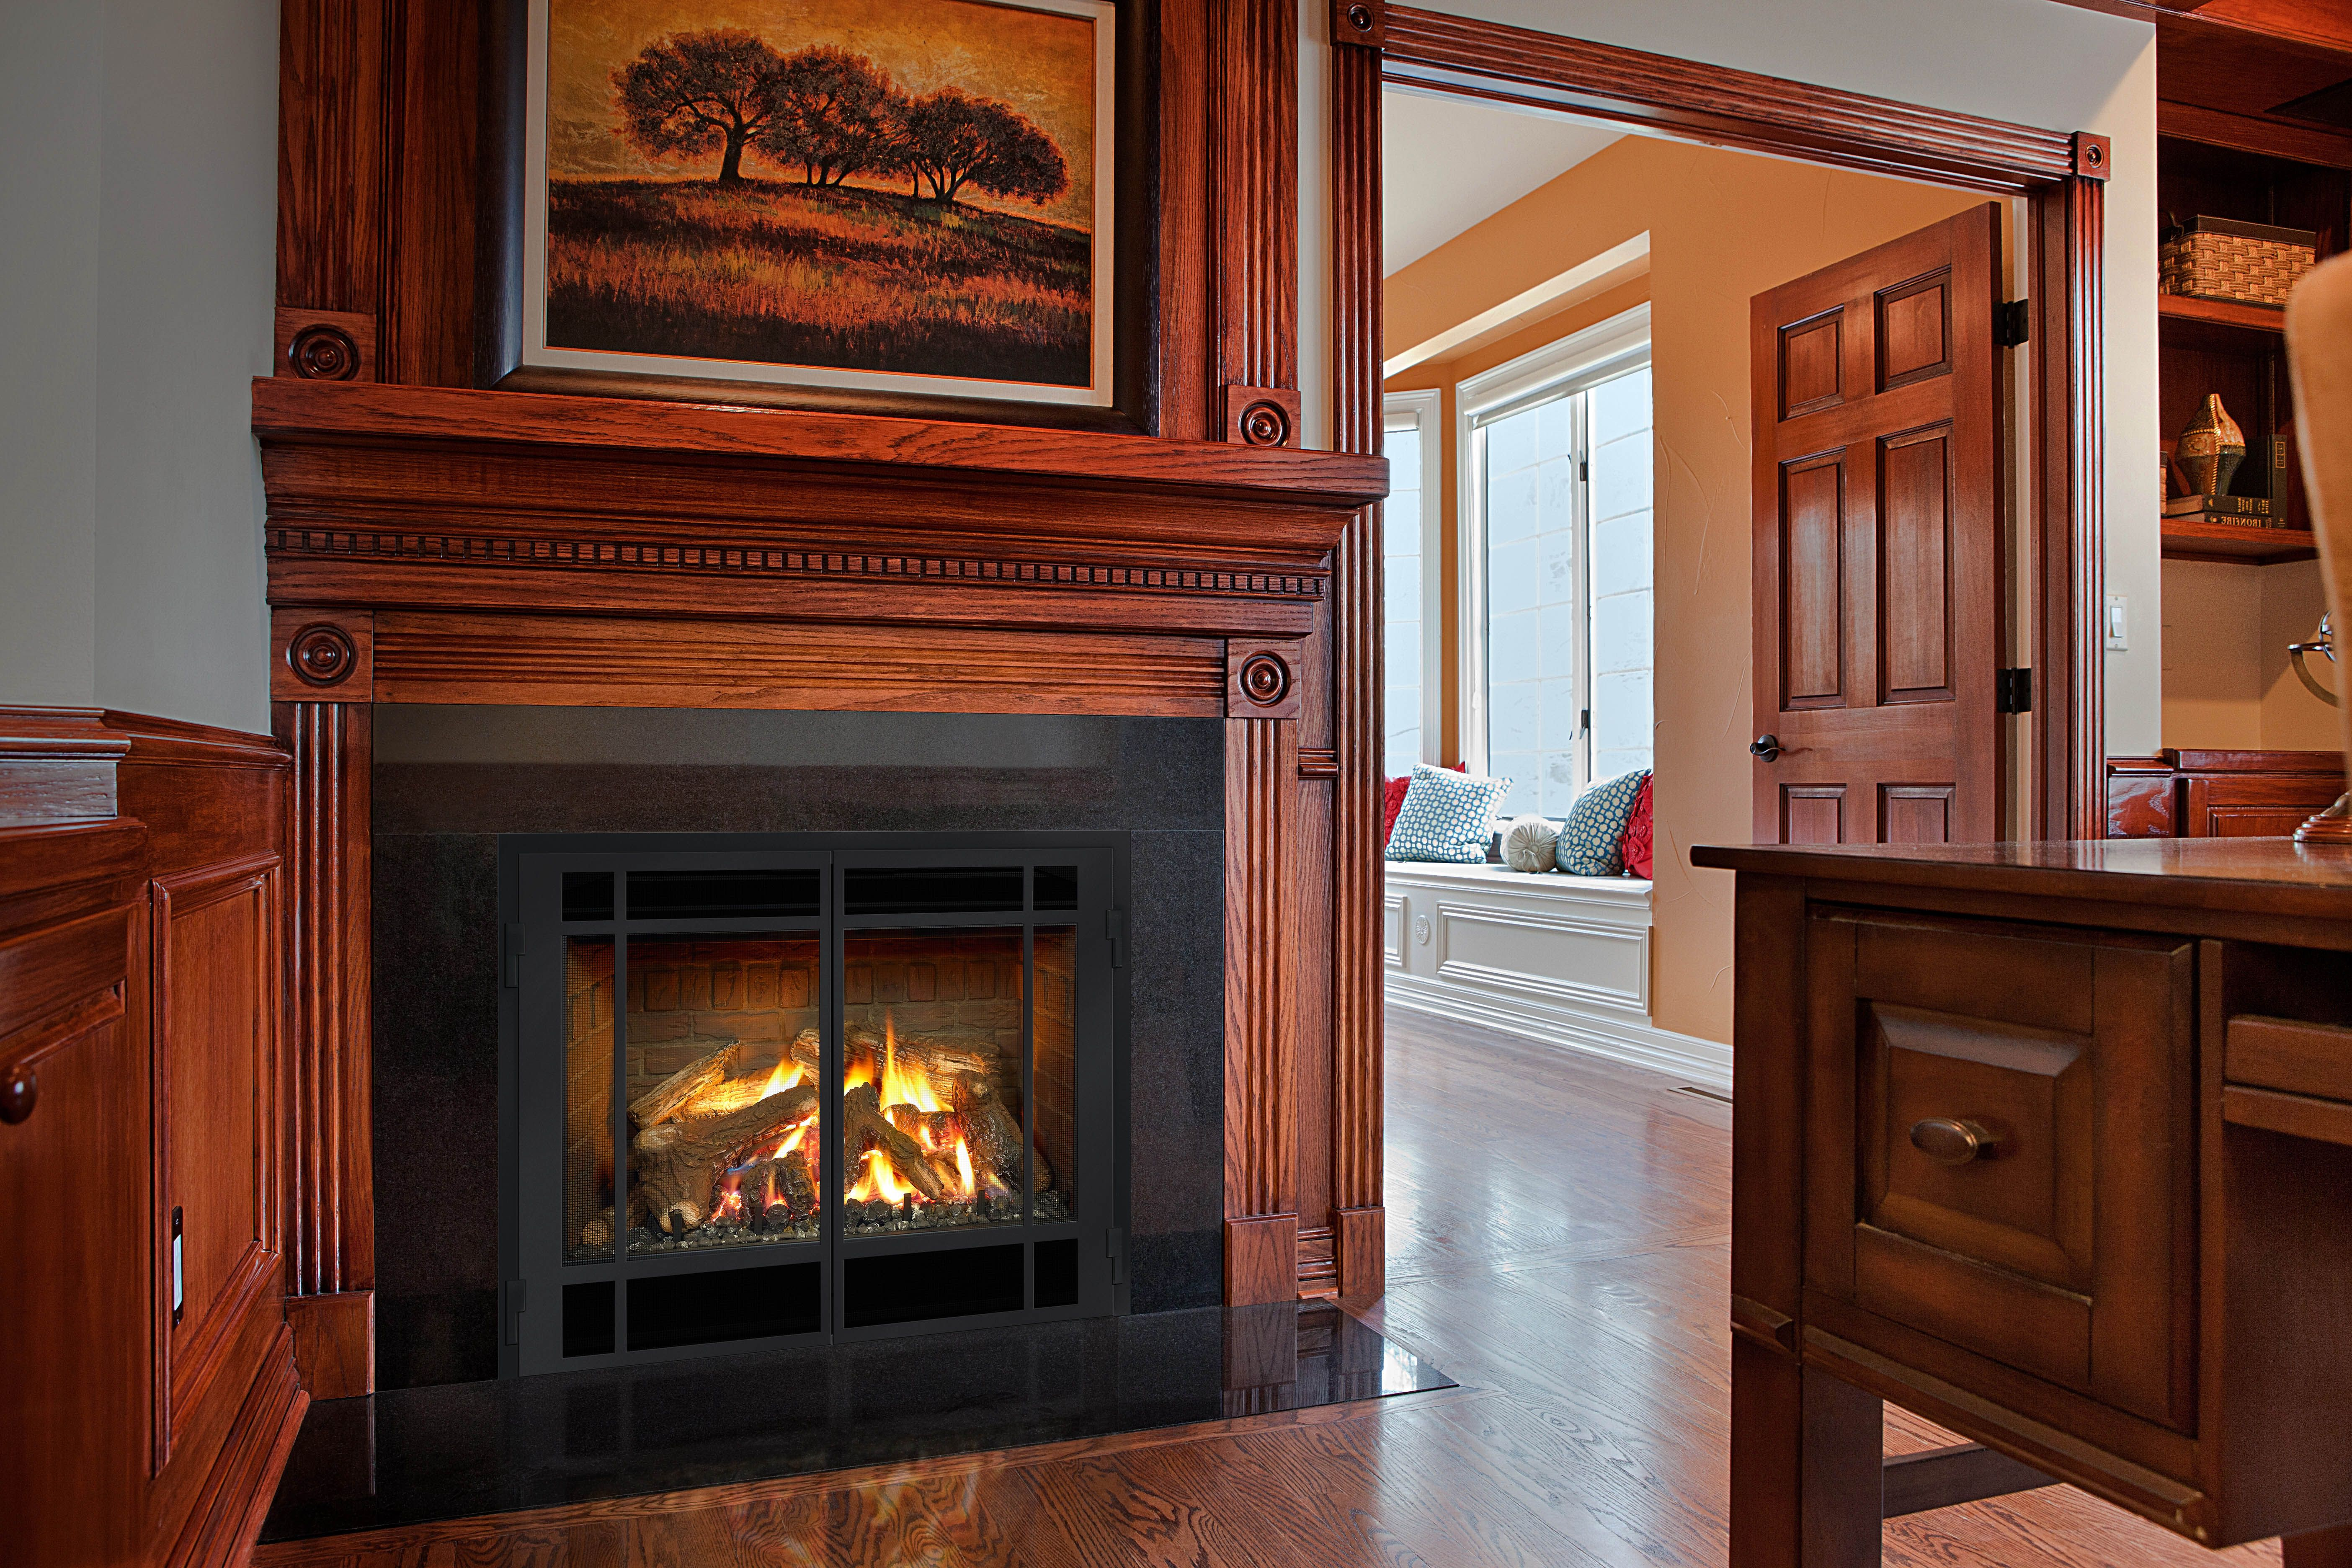 Swell Traditionally Sound The Dxv Mendota Hearth Gas Fireplace Is Download Free Architecture Designs Sospemadebymaigaardcom